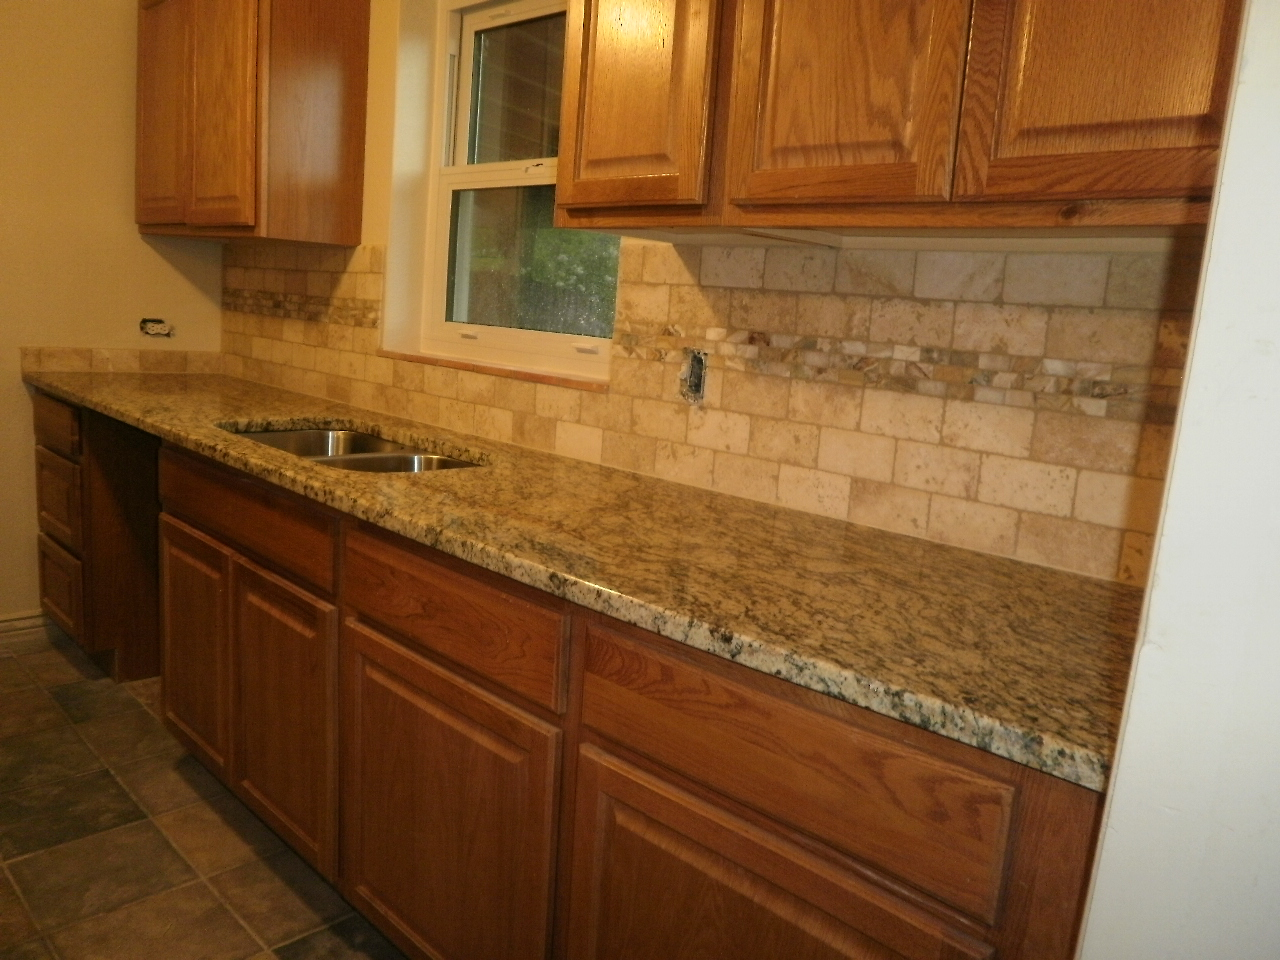 Kitchen Backsplash Ideas Granite Countertops with Tile